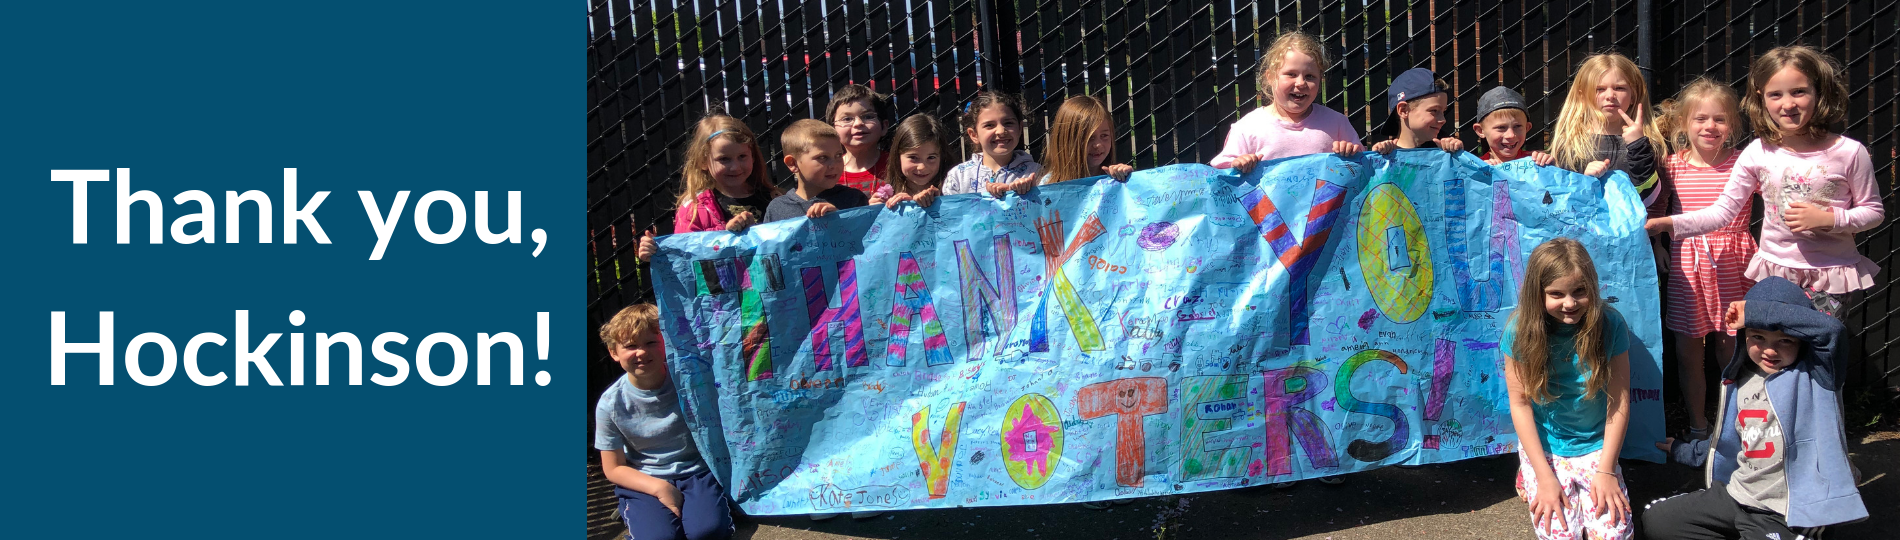 "HHES students display a sign that says, ""Thank you, voters!"""